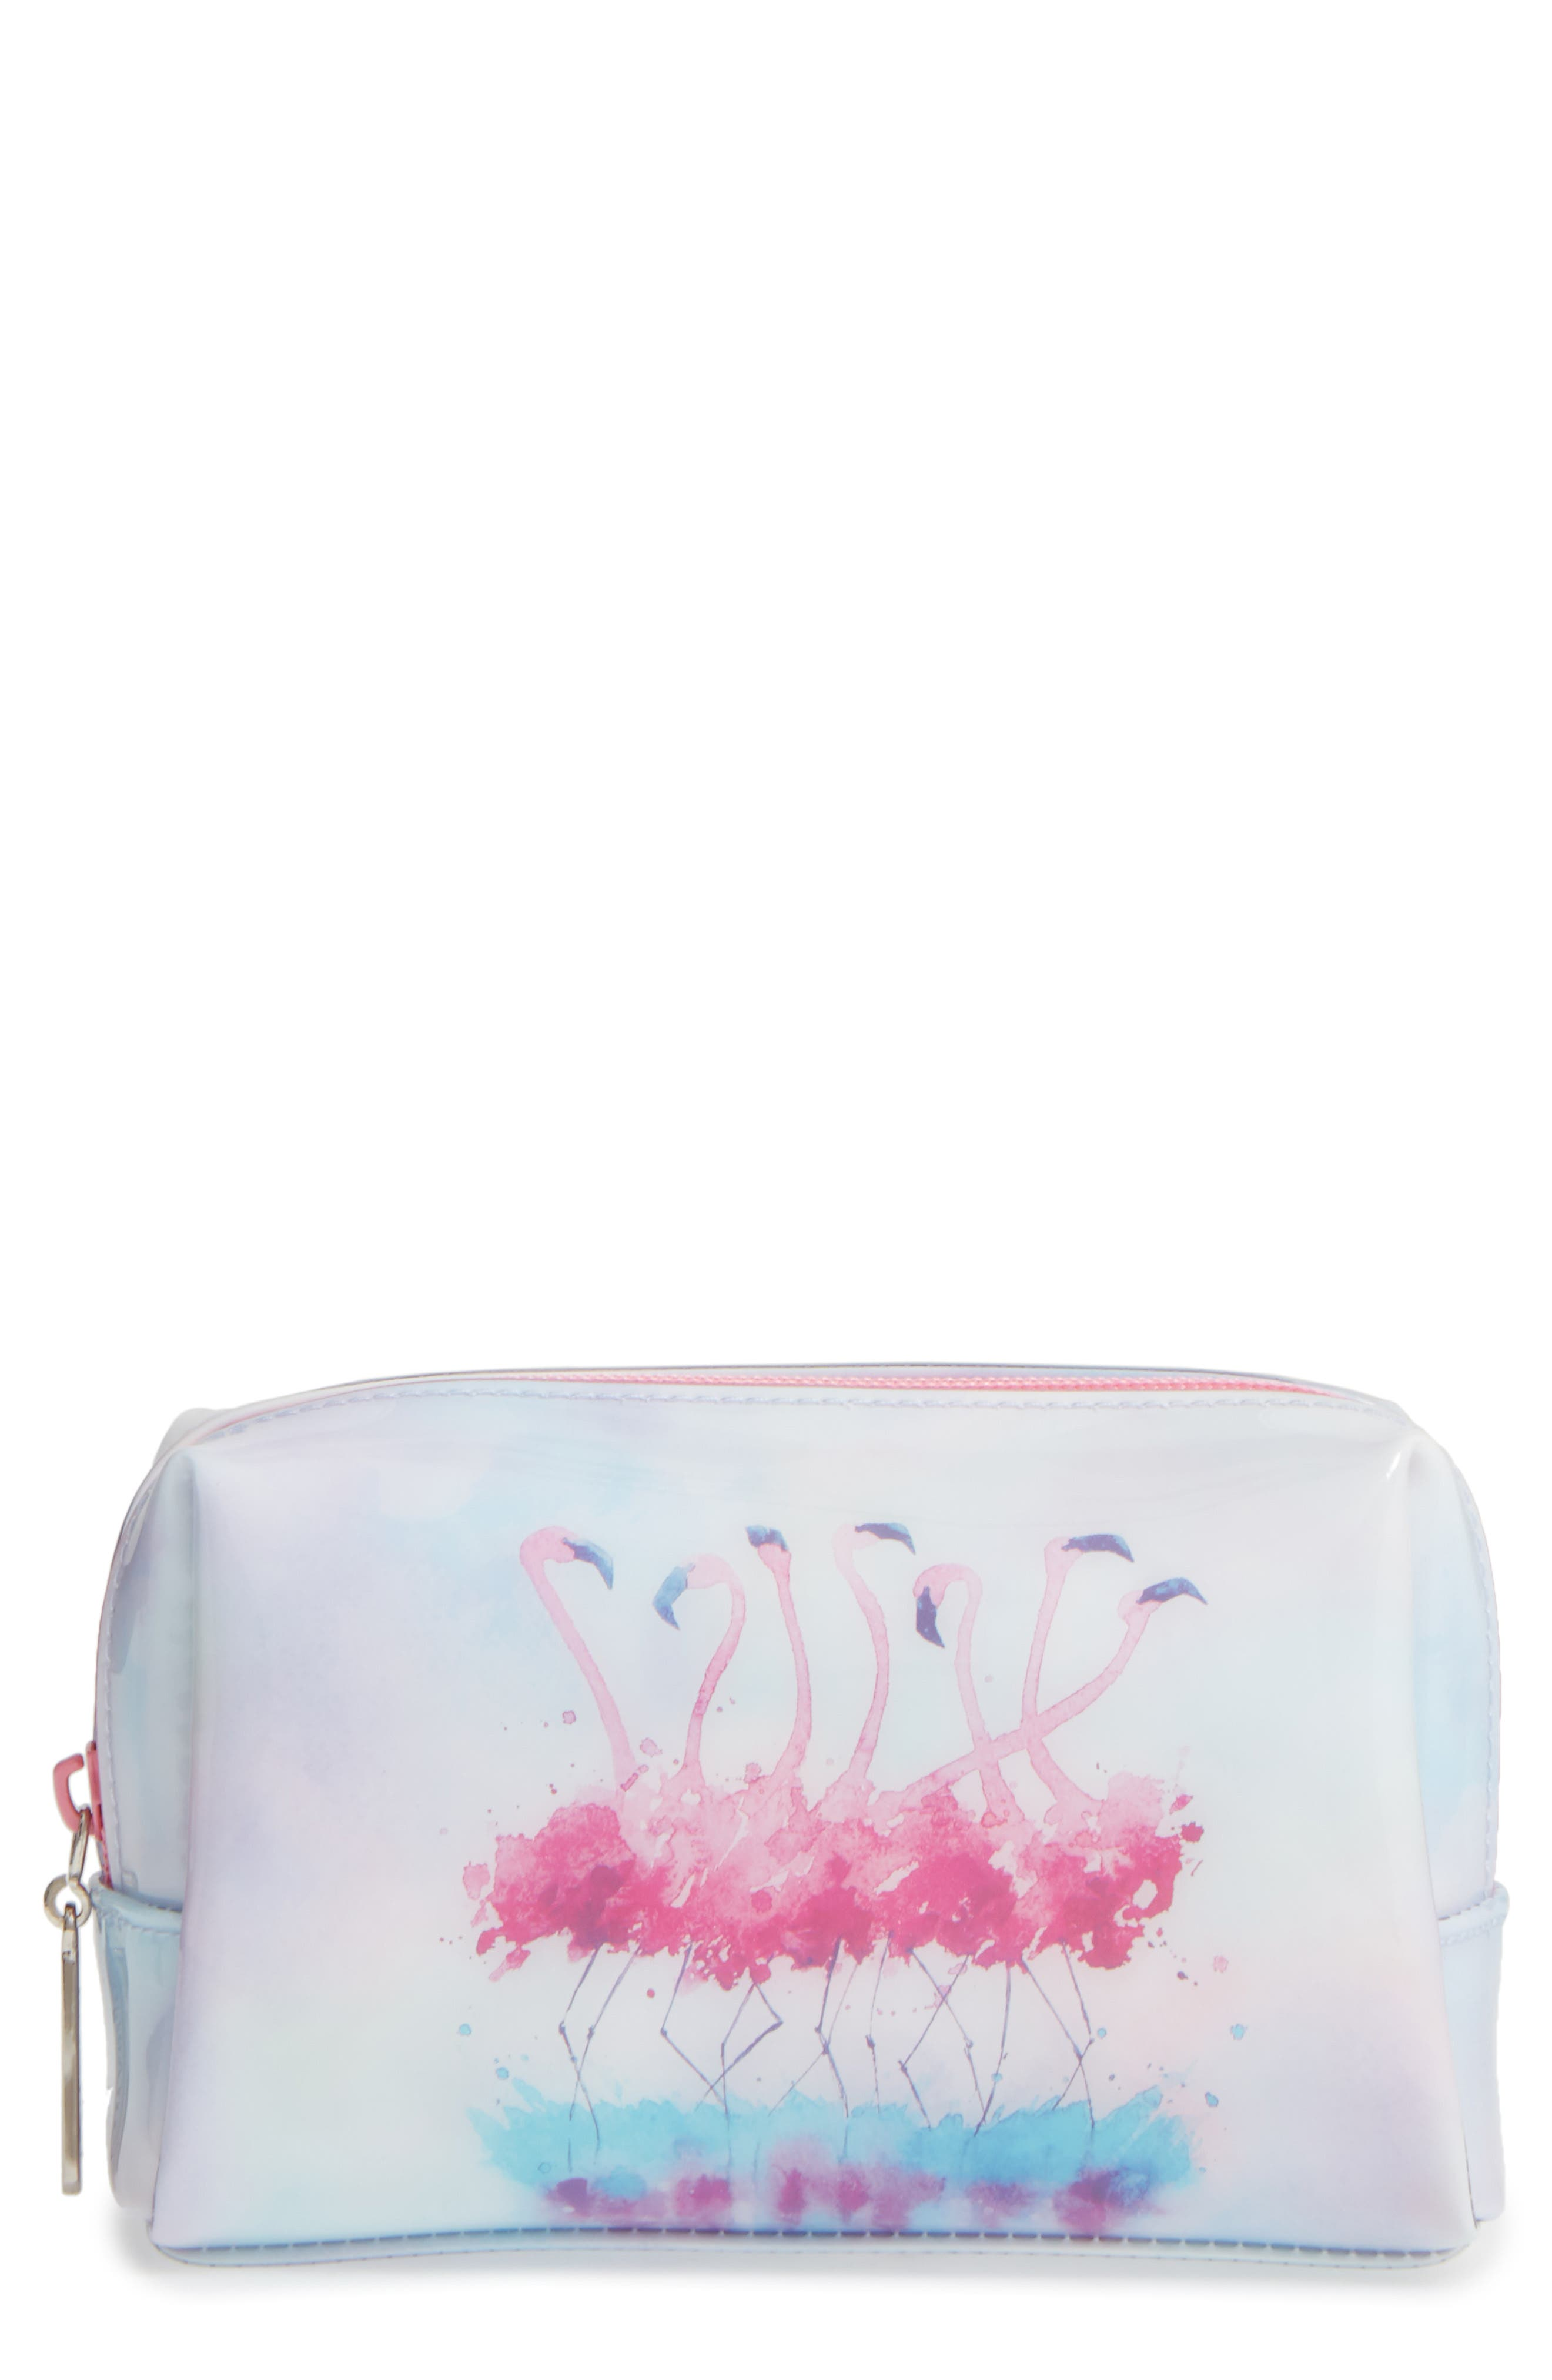 Catseye London Flamingo Cosmetics Bag